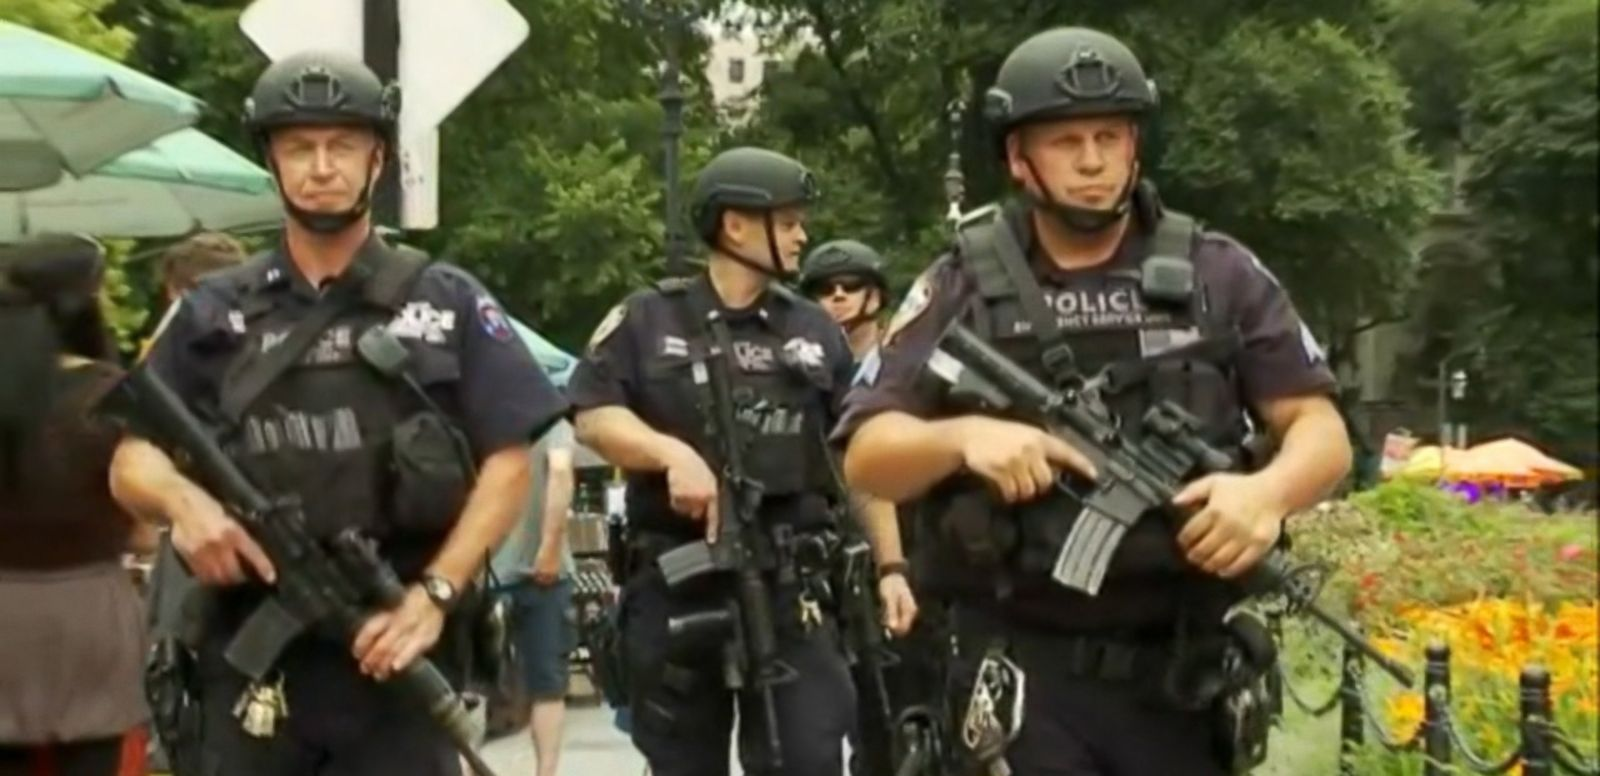 VIDEO: The Department of Homeland Security and the FBI have issued a bulletin to authorities nationwide, warning that ISIS sympathizers may try to stage attacks and police are responding by beefing up security measures.